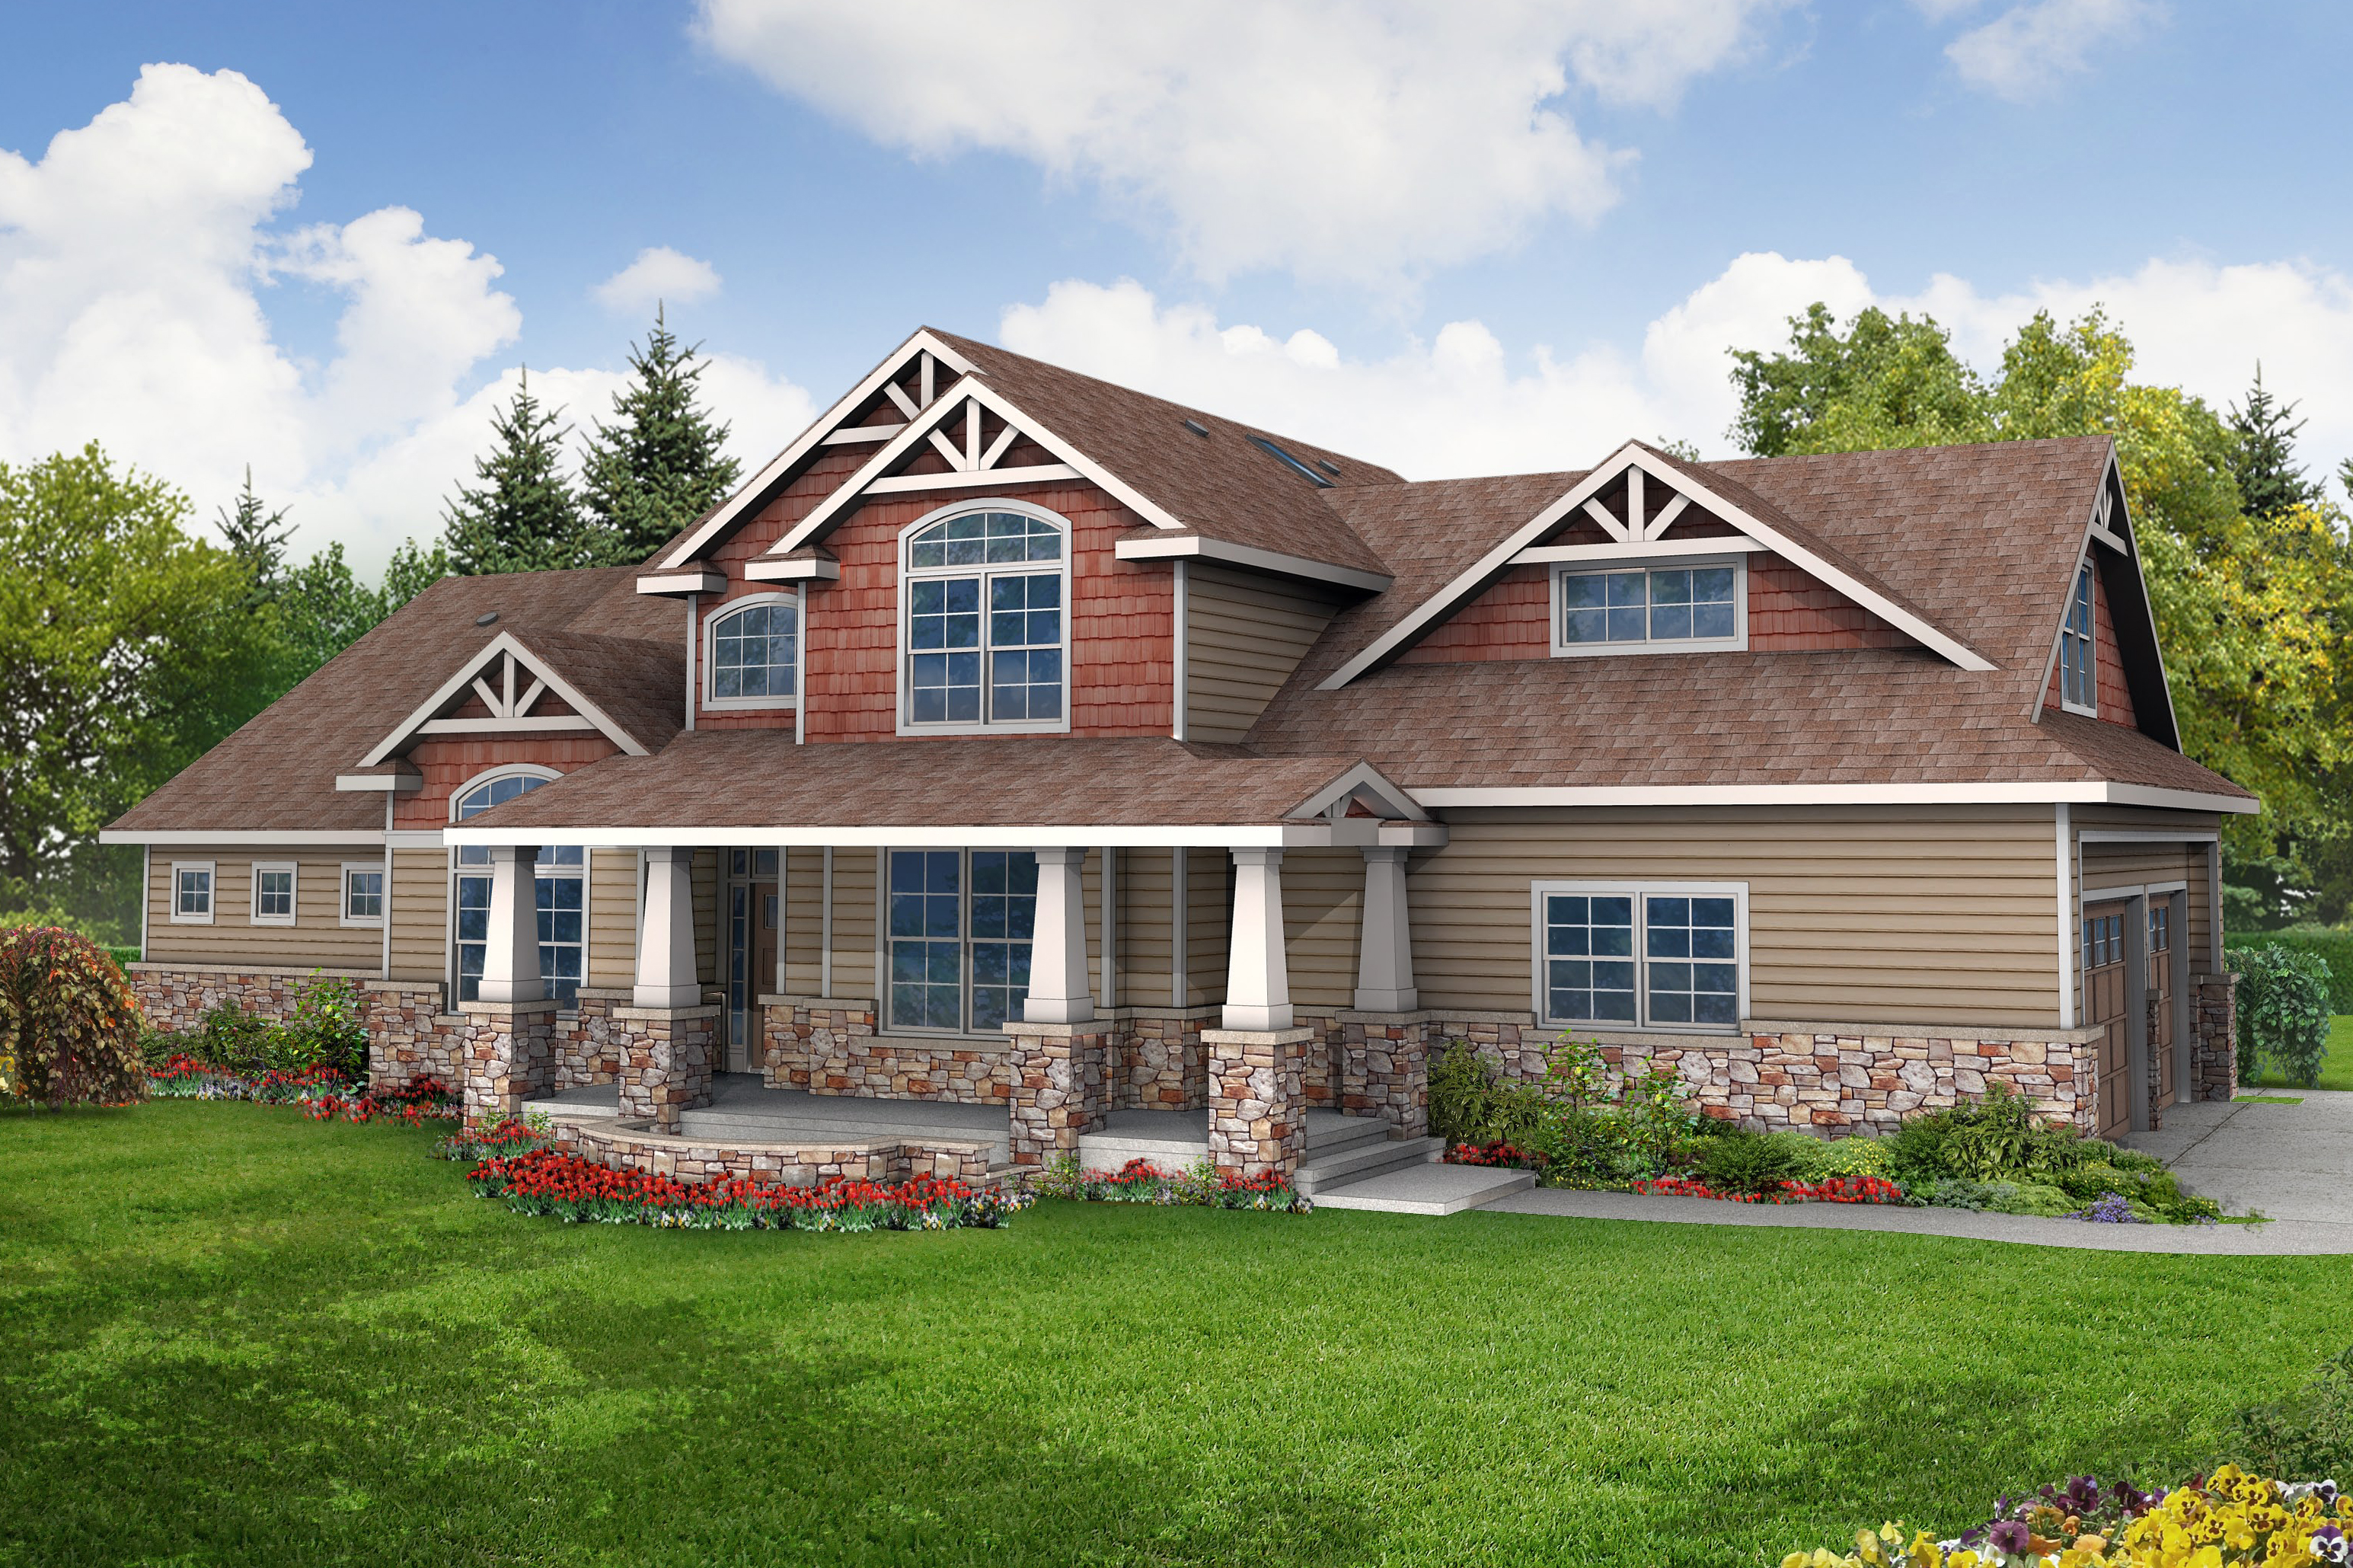 Craftsman House Plans Craftsman Home Plans Craftsman Style